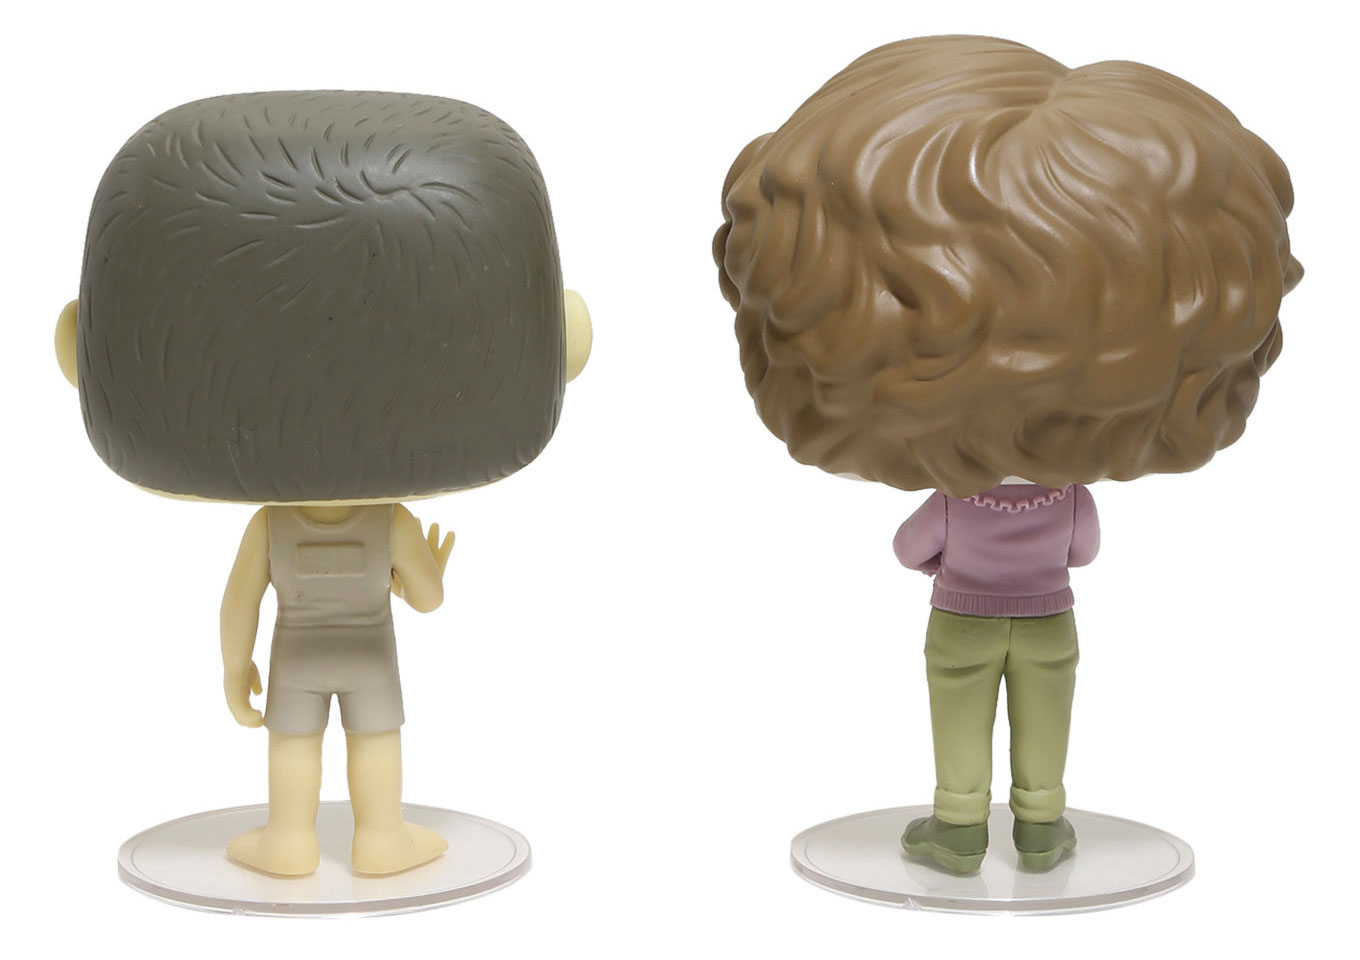 stranger-things-pop-vinyl-figure-spring-convention-exclusives